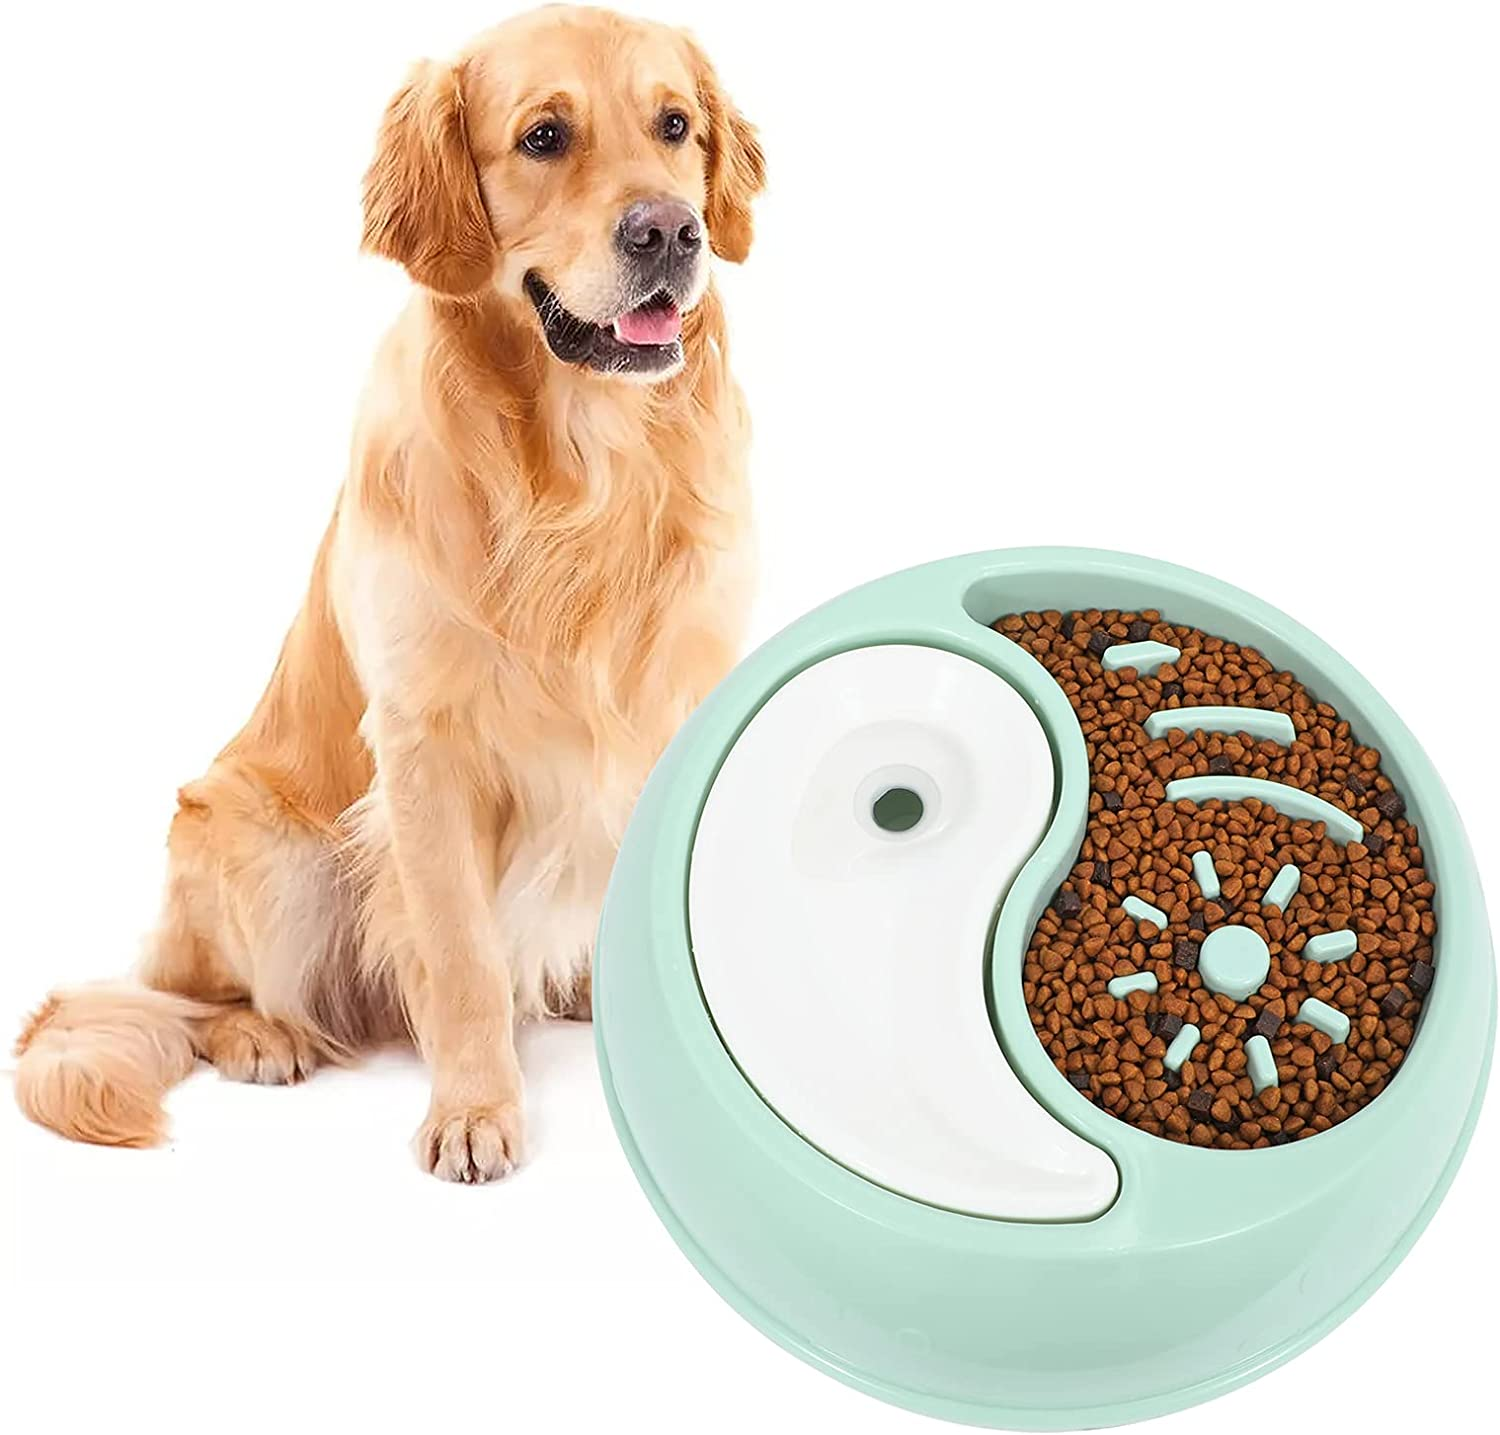 Slow Feeder Dog Bowls, XZQTIVE Newest 2 in 1 Double Dog Bowl for Food and Water, Interactive Bloat Stop Pet Bowl Anti-Gulping Slow Eating Non Slip Non-Toxic Healthy Design (Green)